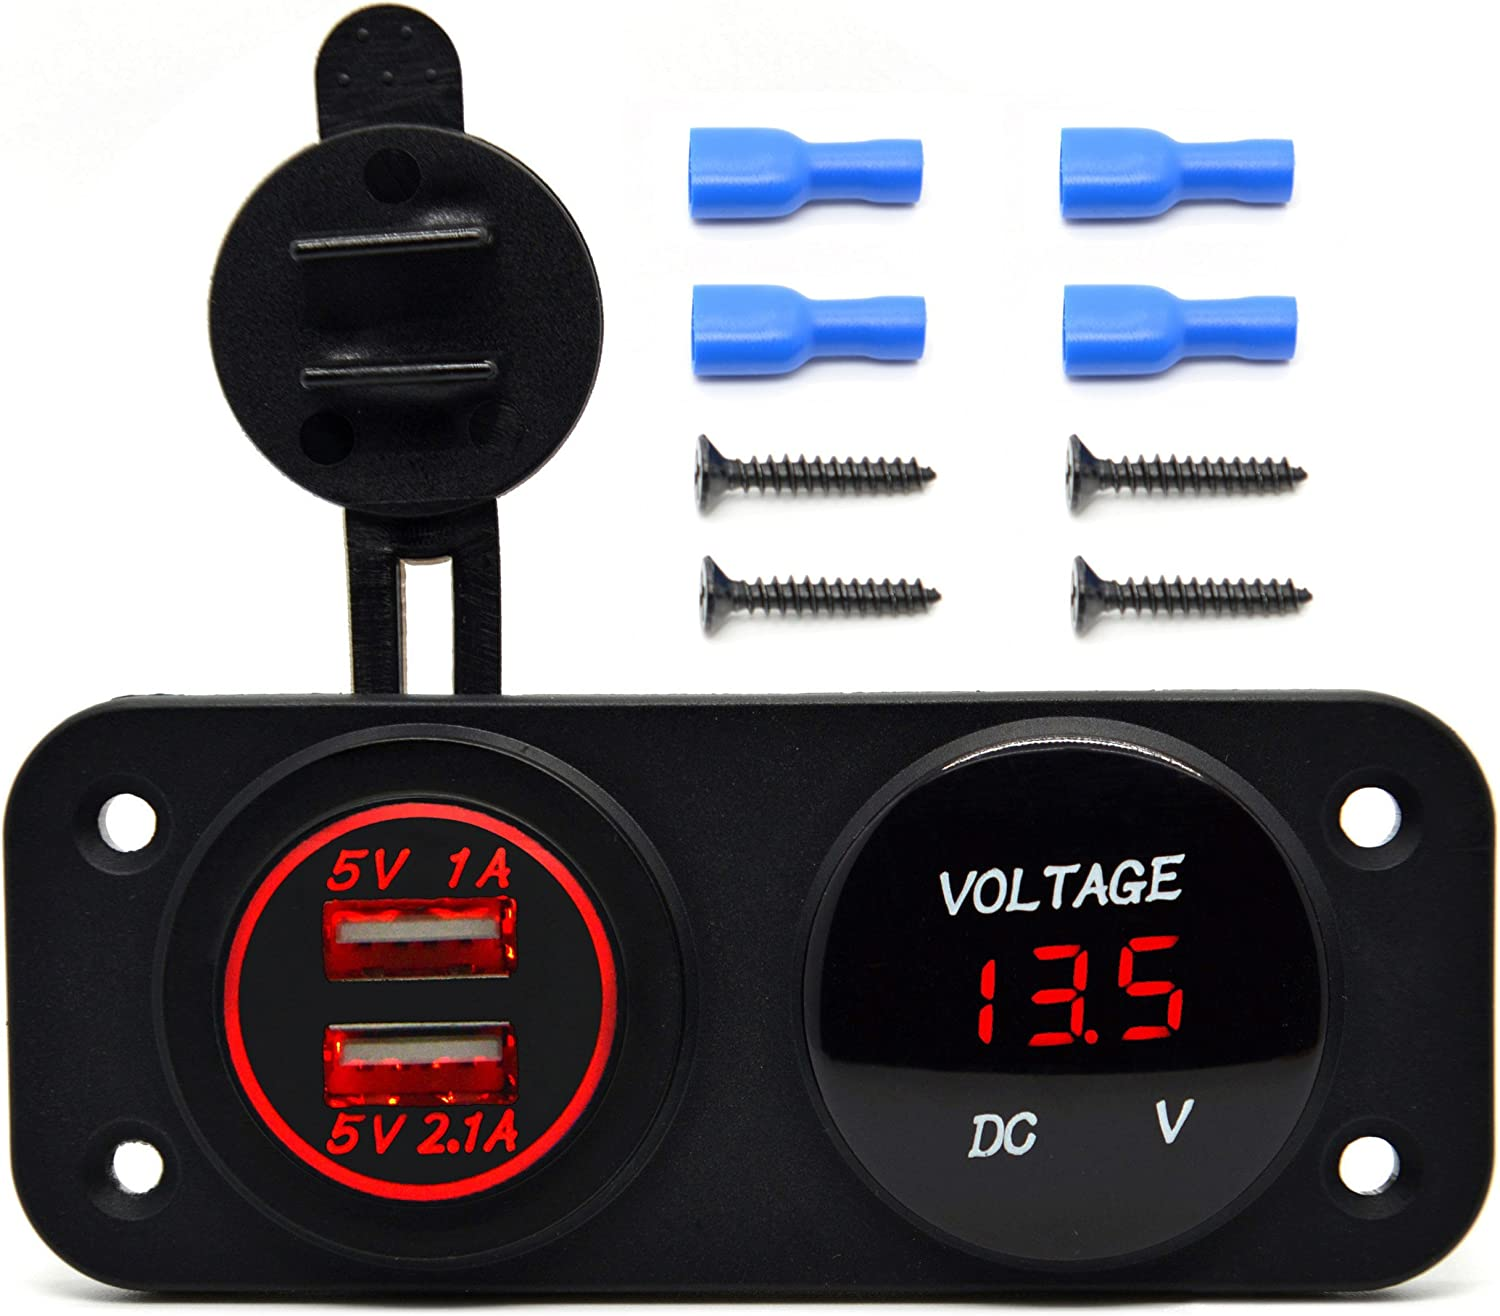 ON-OFF Toggle Switch Four Functions Panel for Car Boat Marine RV Truck Camper Vehicles GPS Mobiles Green Cllena Dual USB Socket Charger 2.1A/&2.1A 12V Power Outlet LED Voltmeter